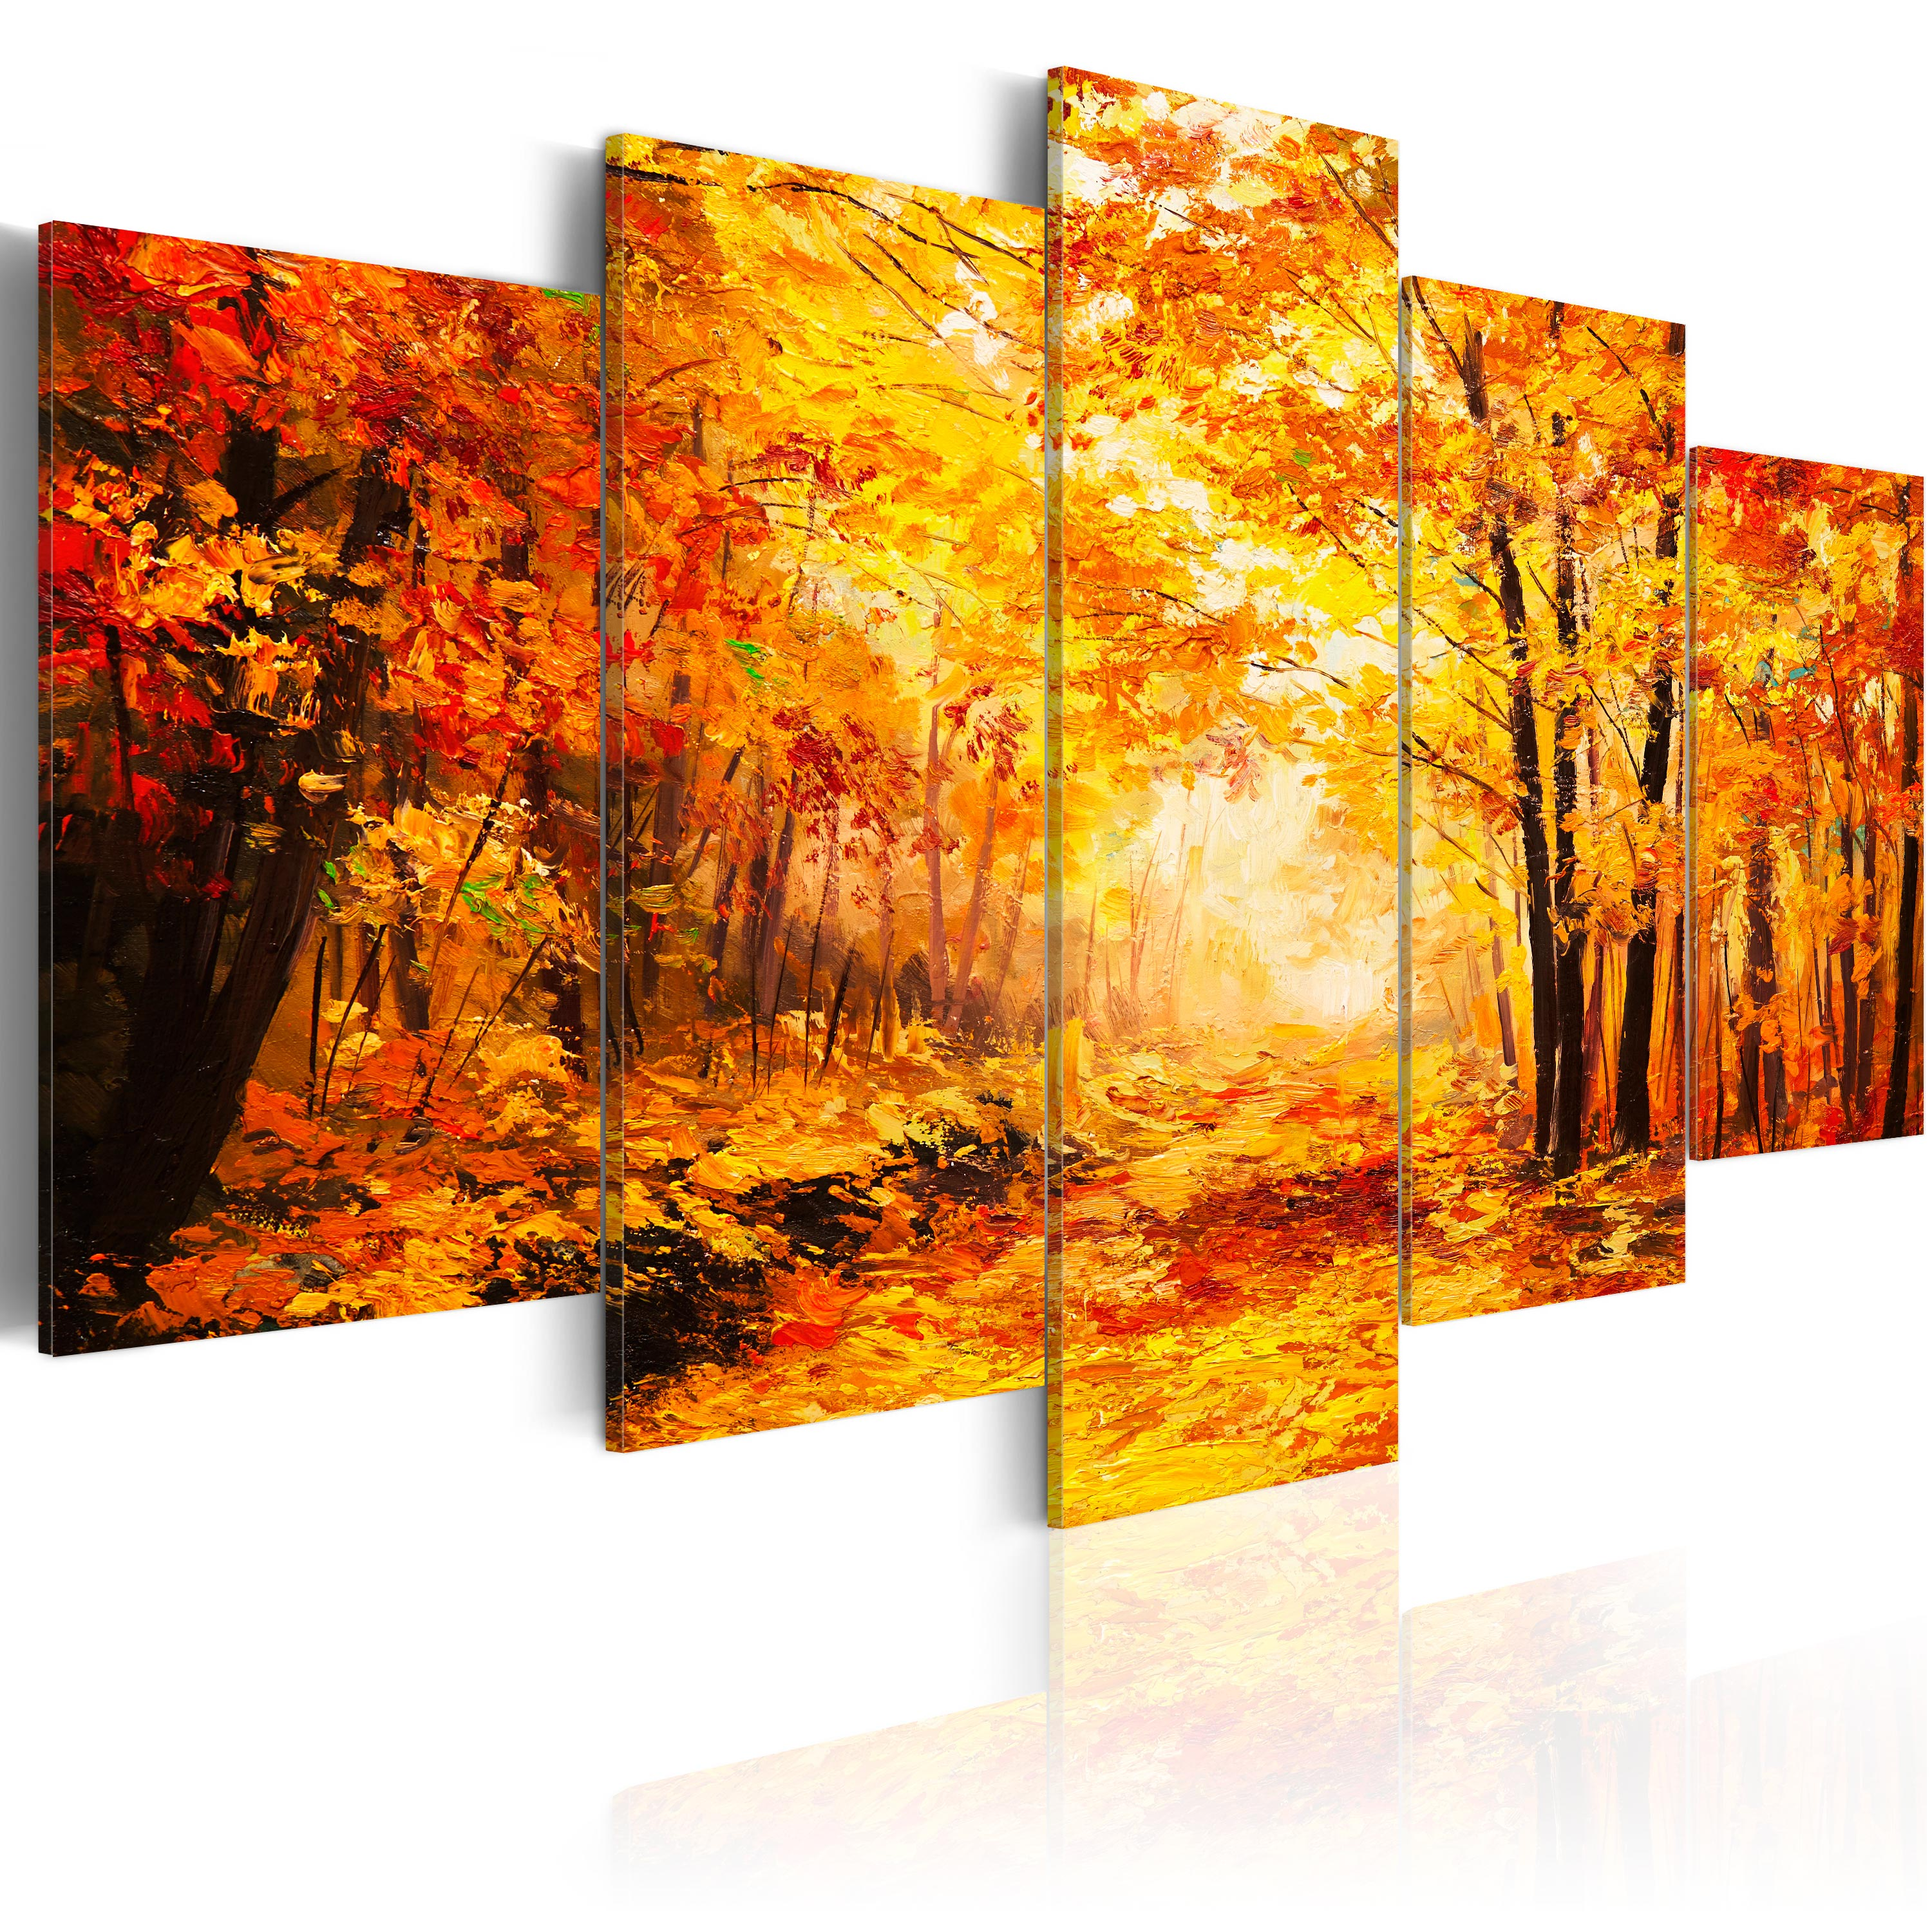 leinwand bilder xxl kunstdruck bild herbst wald natur wie gemalt c b 0093 b m ebay. Black Bedroom Furniture Sets. Home Design Ideas